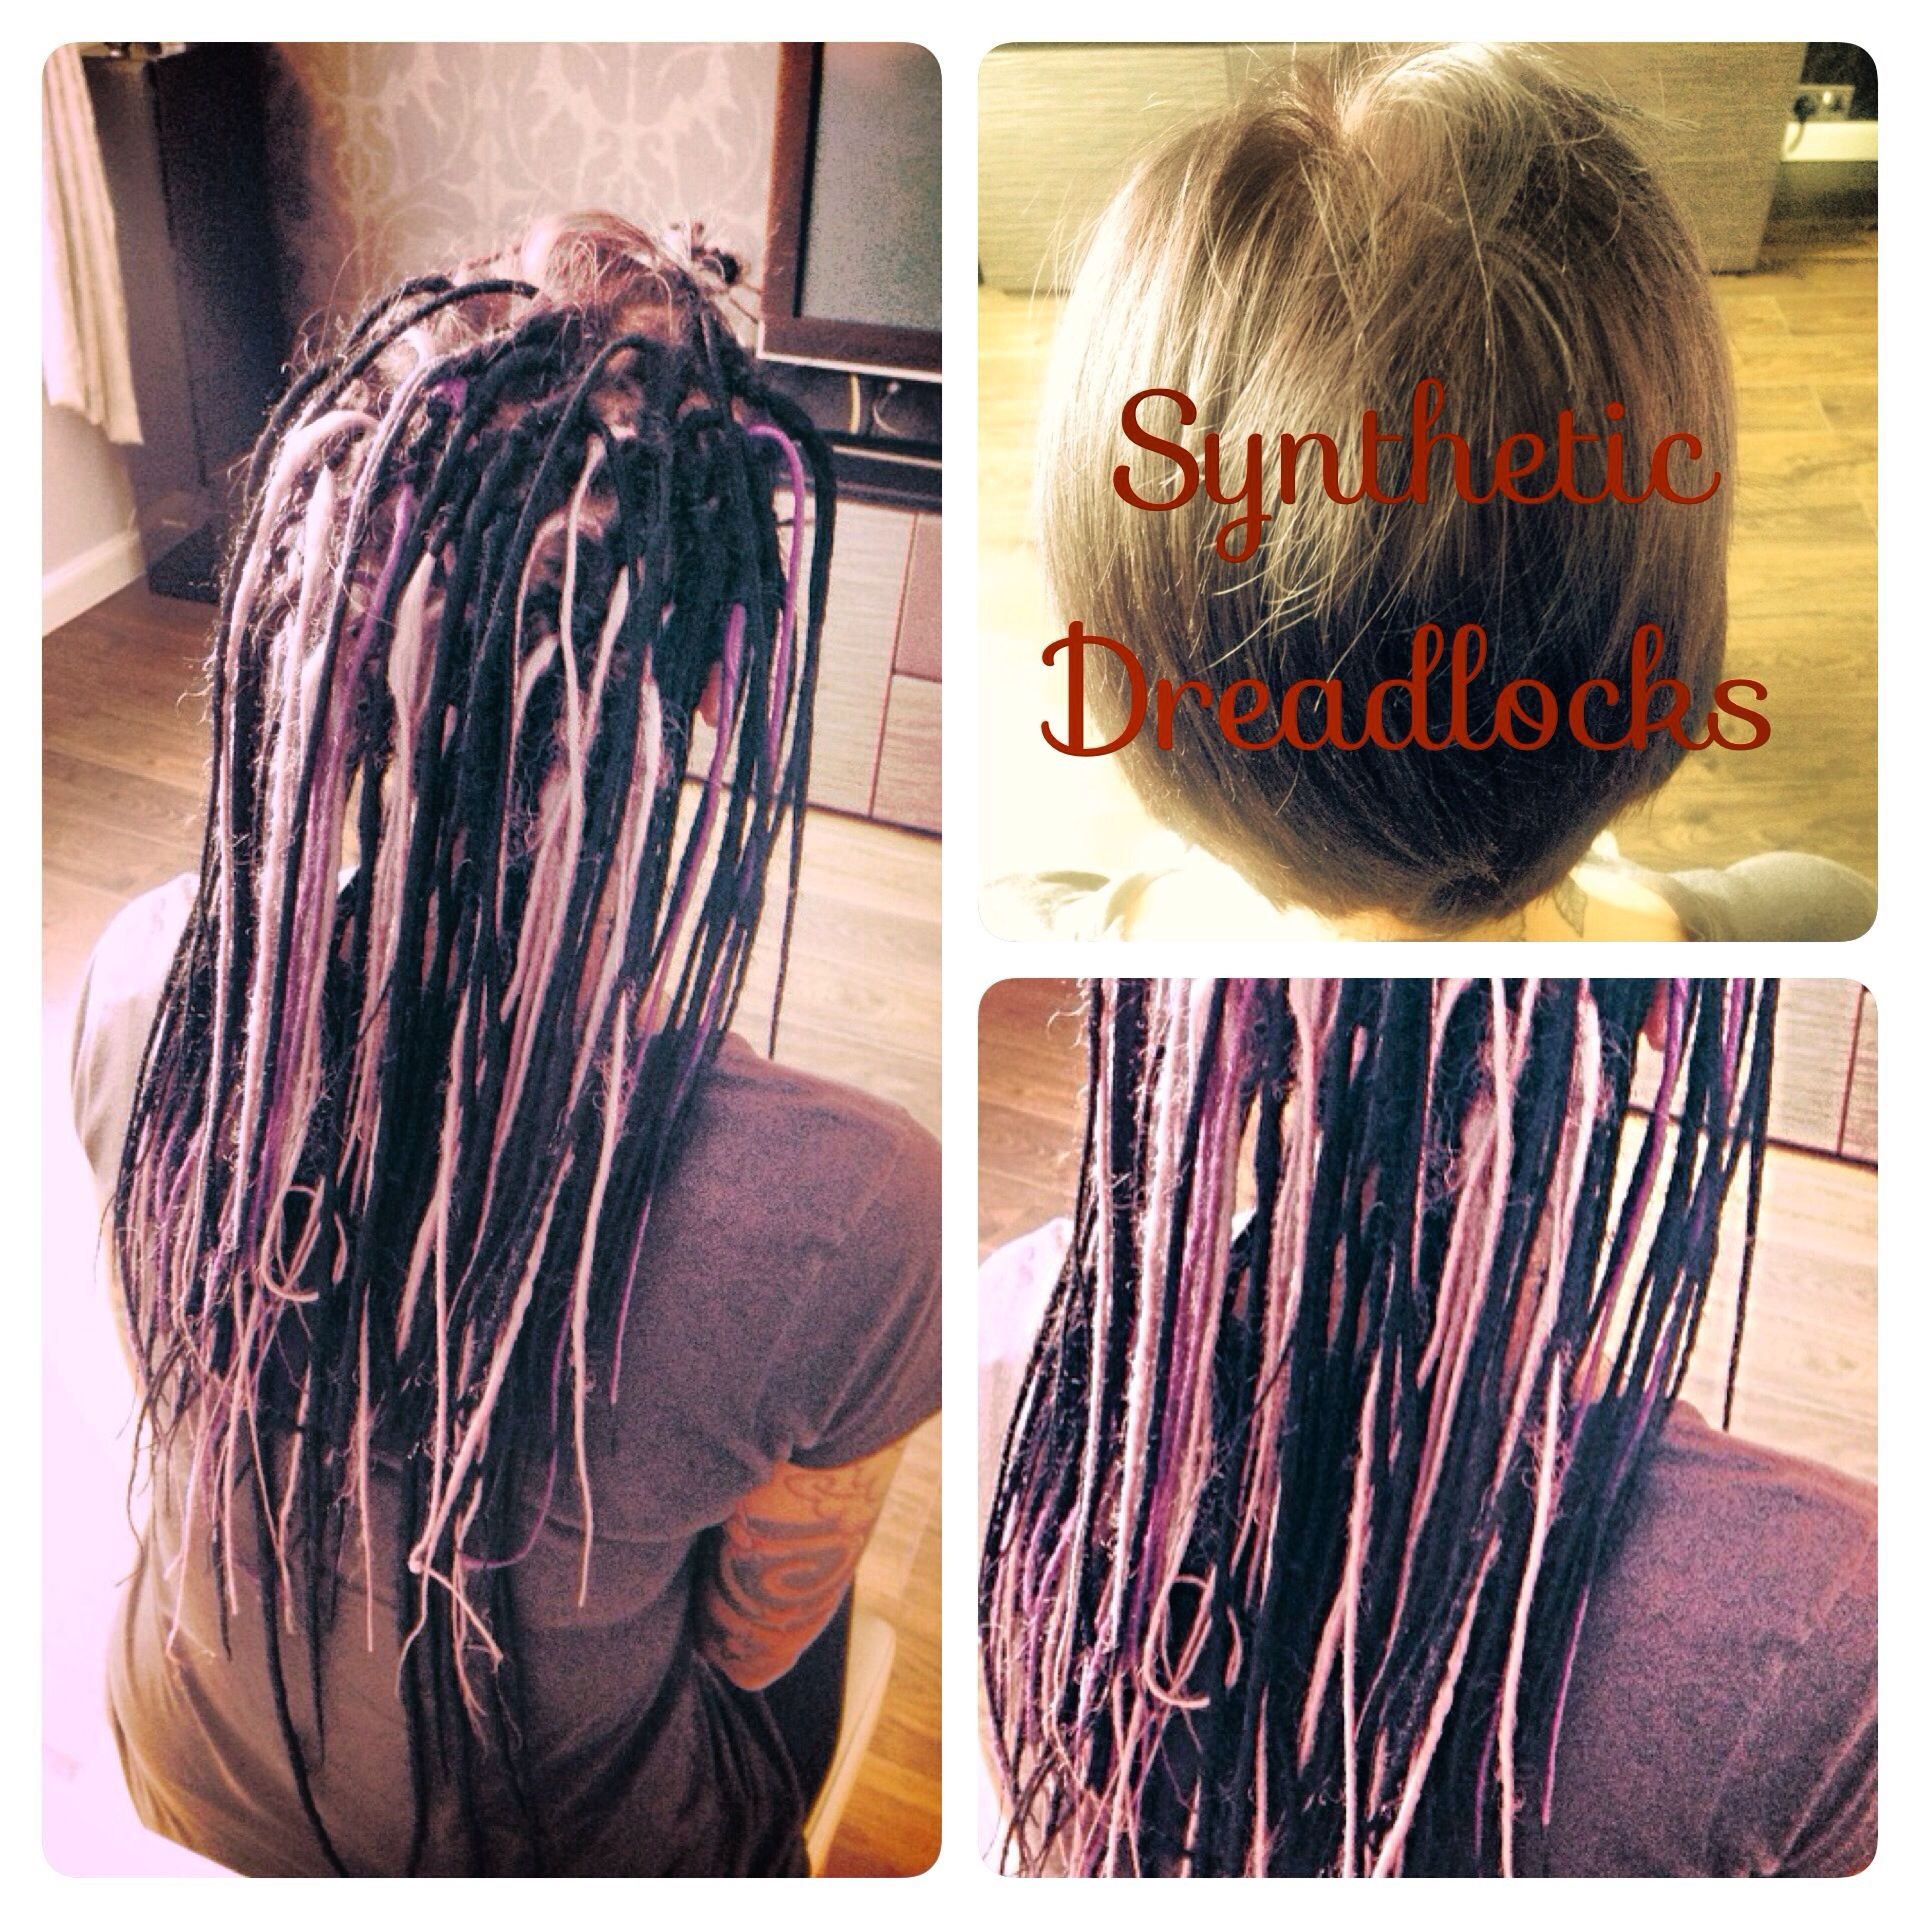 Synthetic dreads installed today dreadhead dreadlocks synthetic